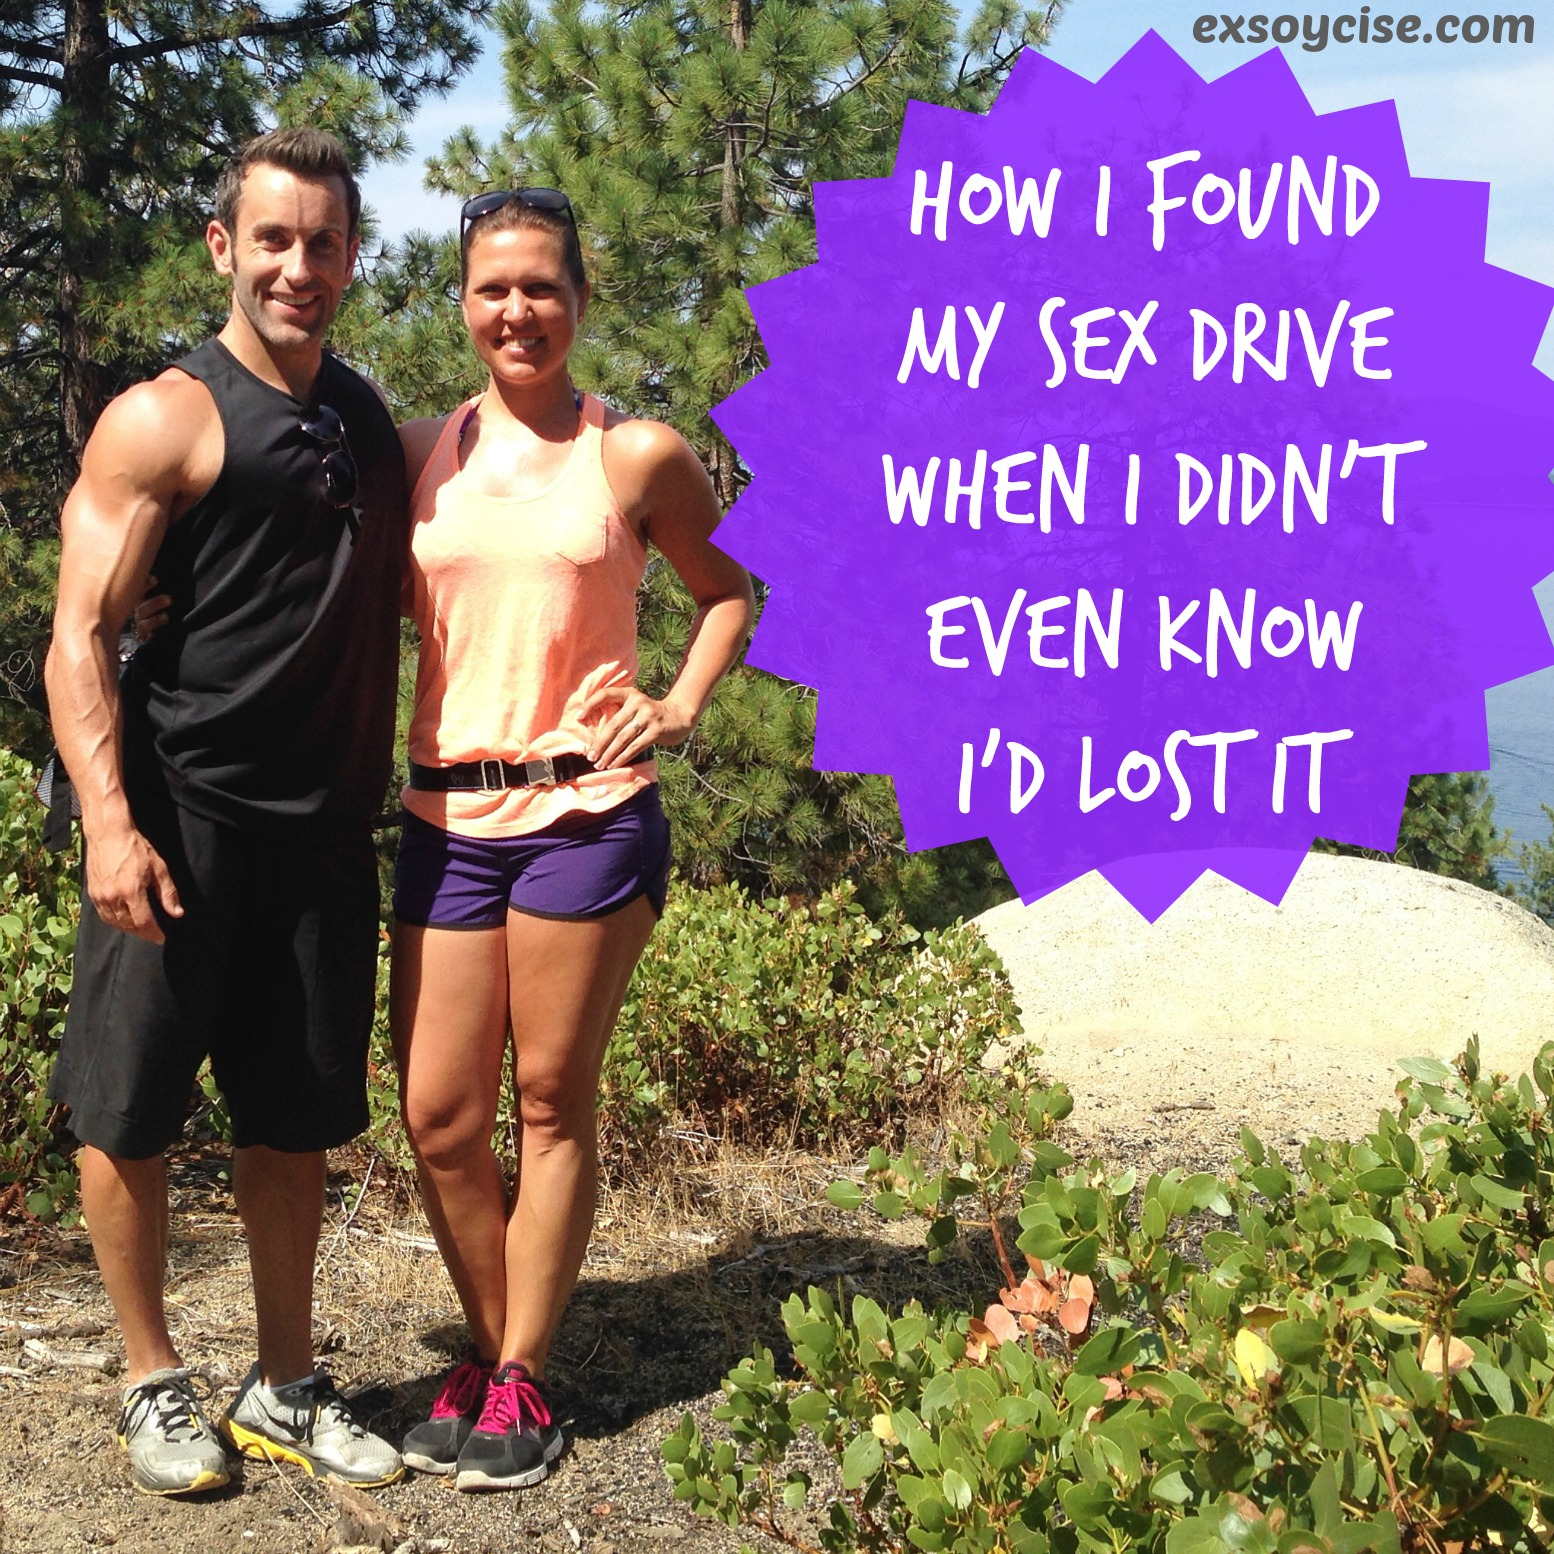 How I found my sex drive when I didn't even know I'd lost it